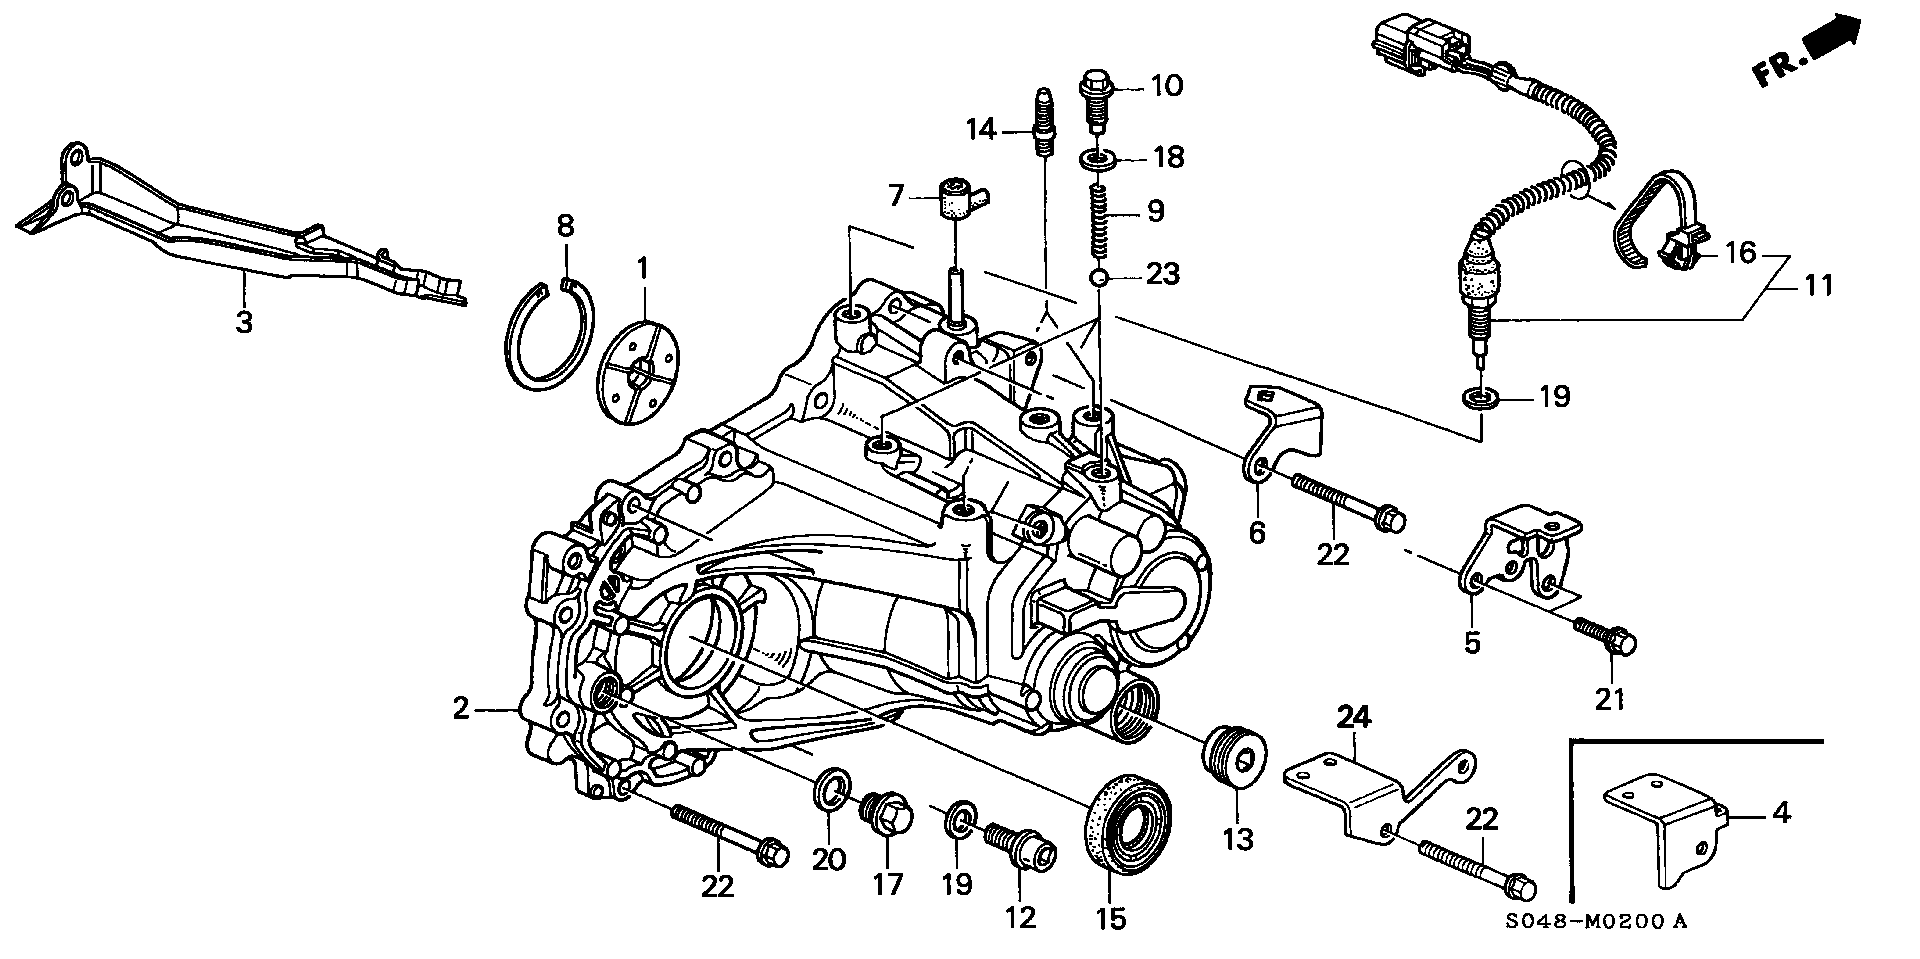 1990 Ford F 150 Wiring Diagram together with I Ll Stick Vacuum In The Intake Manifold Prelude Types T15680 likewise Volvo 940 Fuse Box Diagram On A 1994 in addition Acura Legend Alternator Diagram Html furthermore 1995 Acura Legend Fuel Pump Wiring Diagram. on 1993 acura integra vacuum diagram